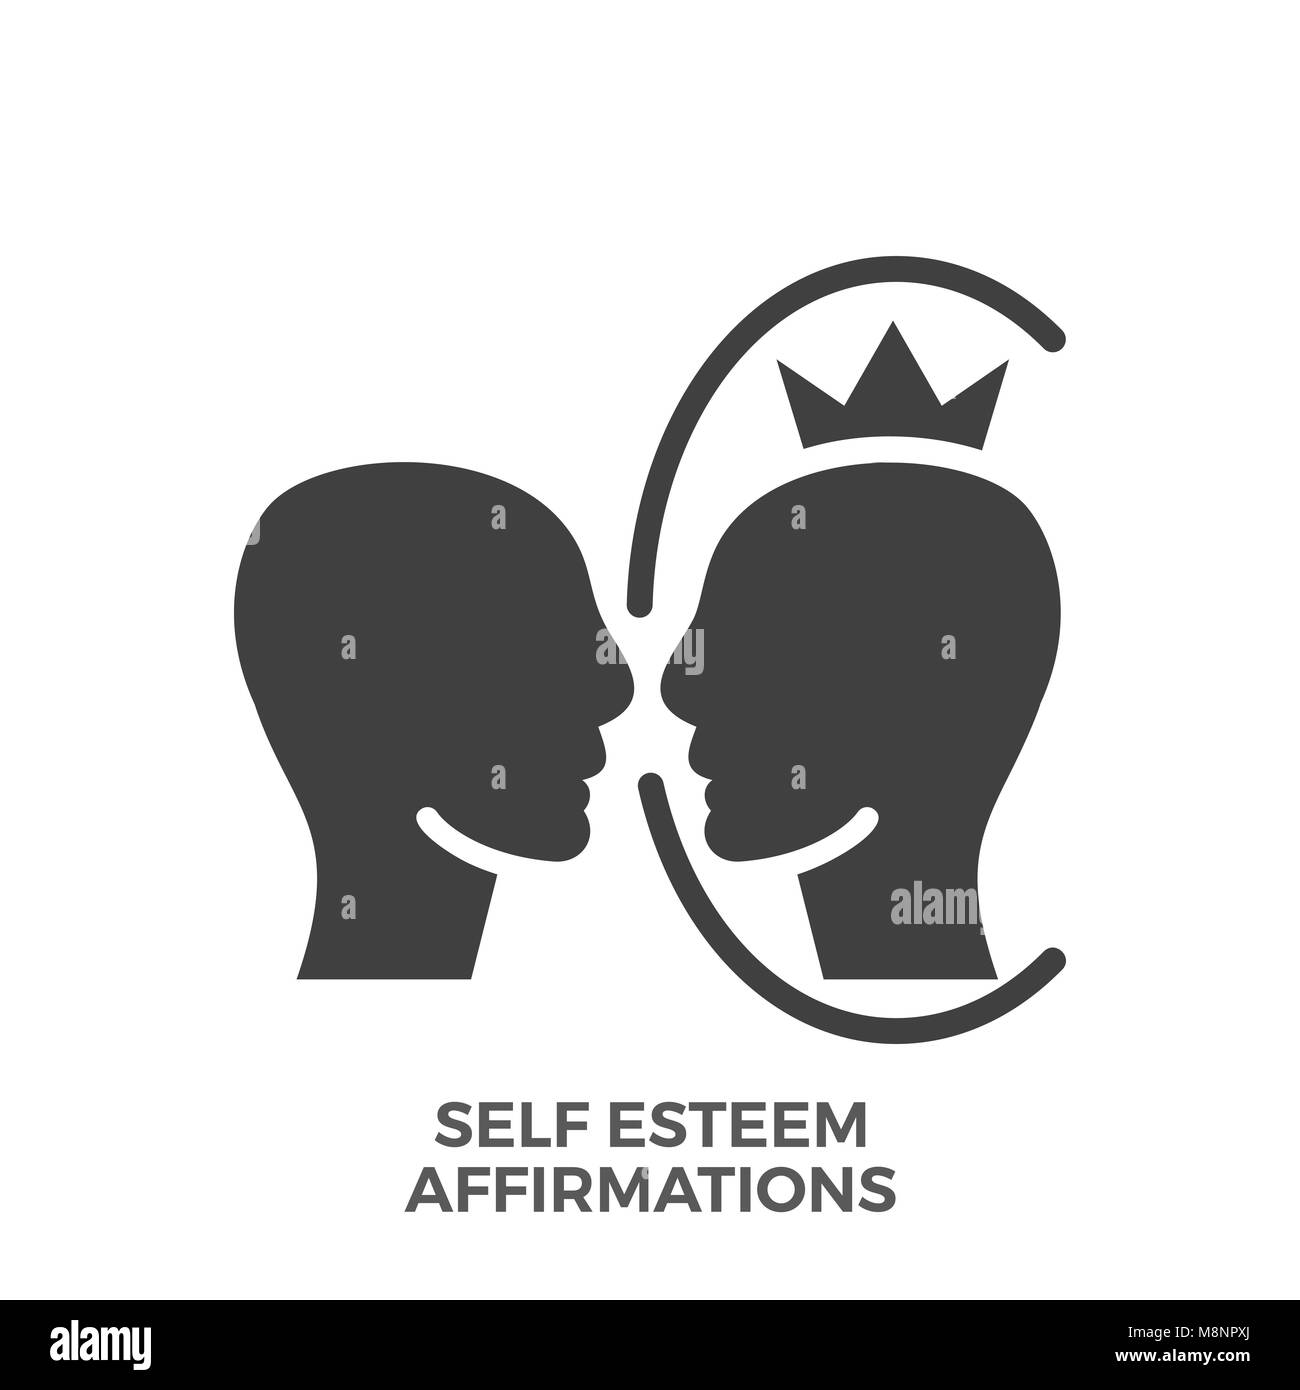 Self Esteem Affirmations Glyph Vector Icon Isolated on the White Background. - Stock Image